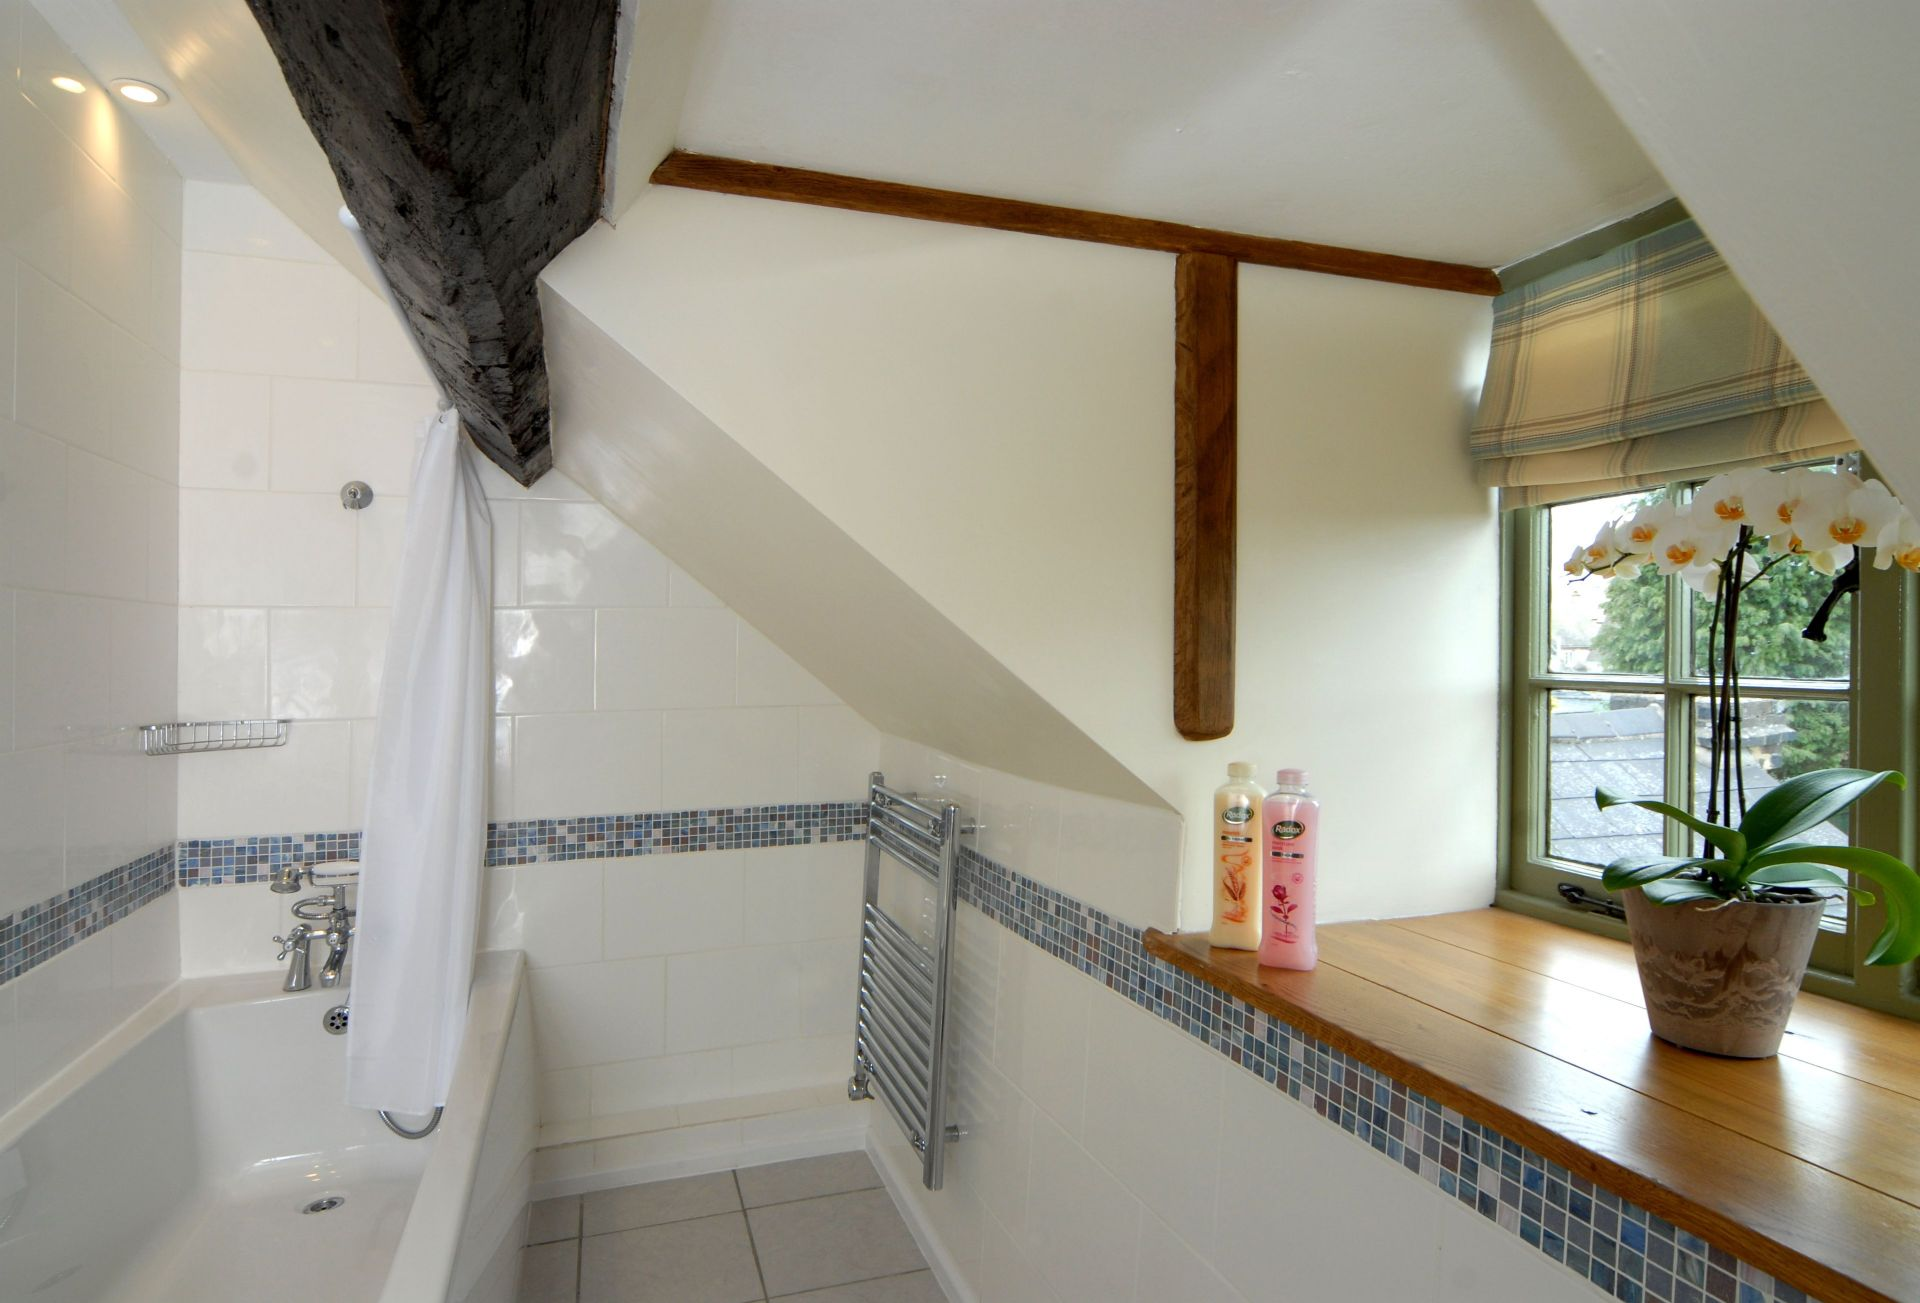 Second floor: En-suite bathroom